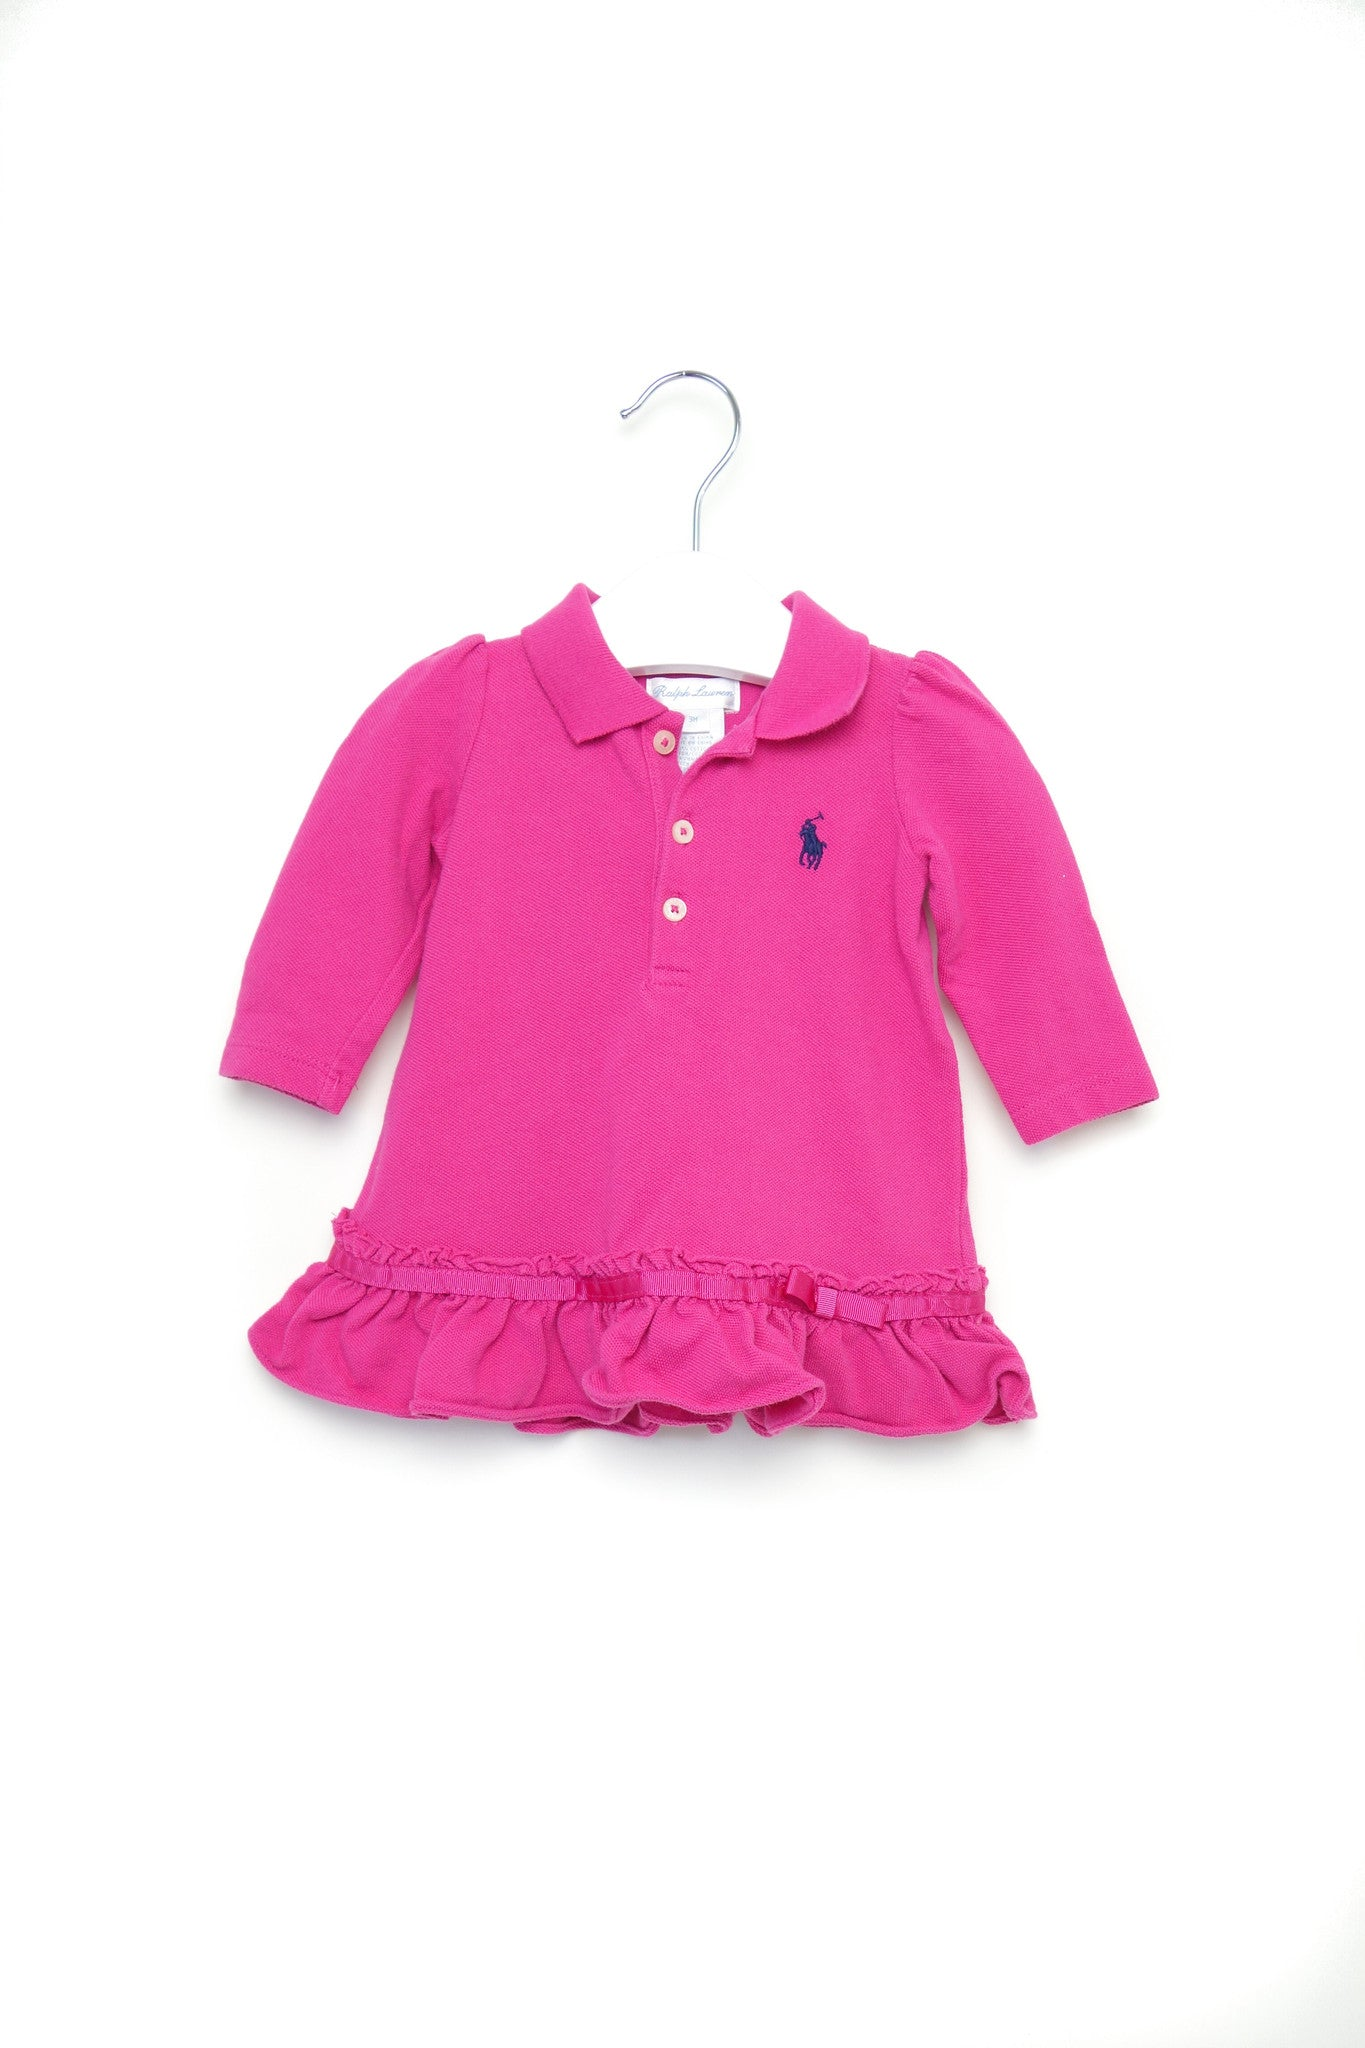 Ralph Lauren at Retykle | Online Shopping Discount Baby & Kids Clothes Hong Kong